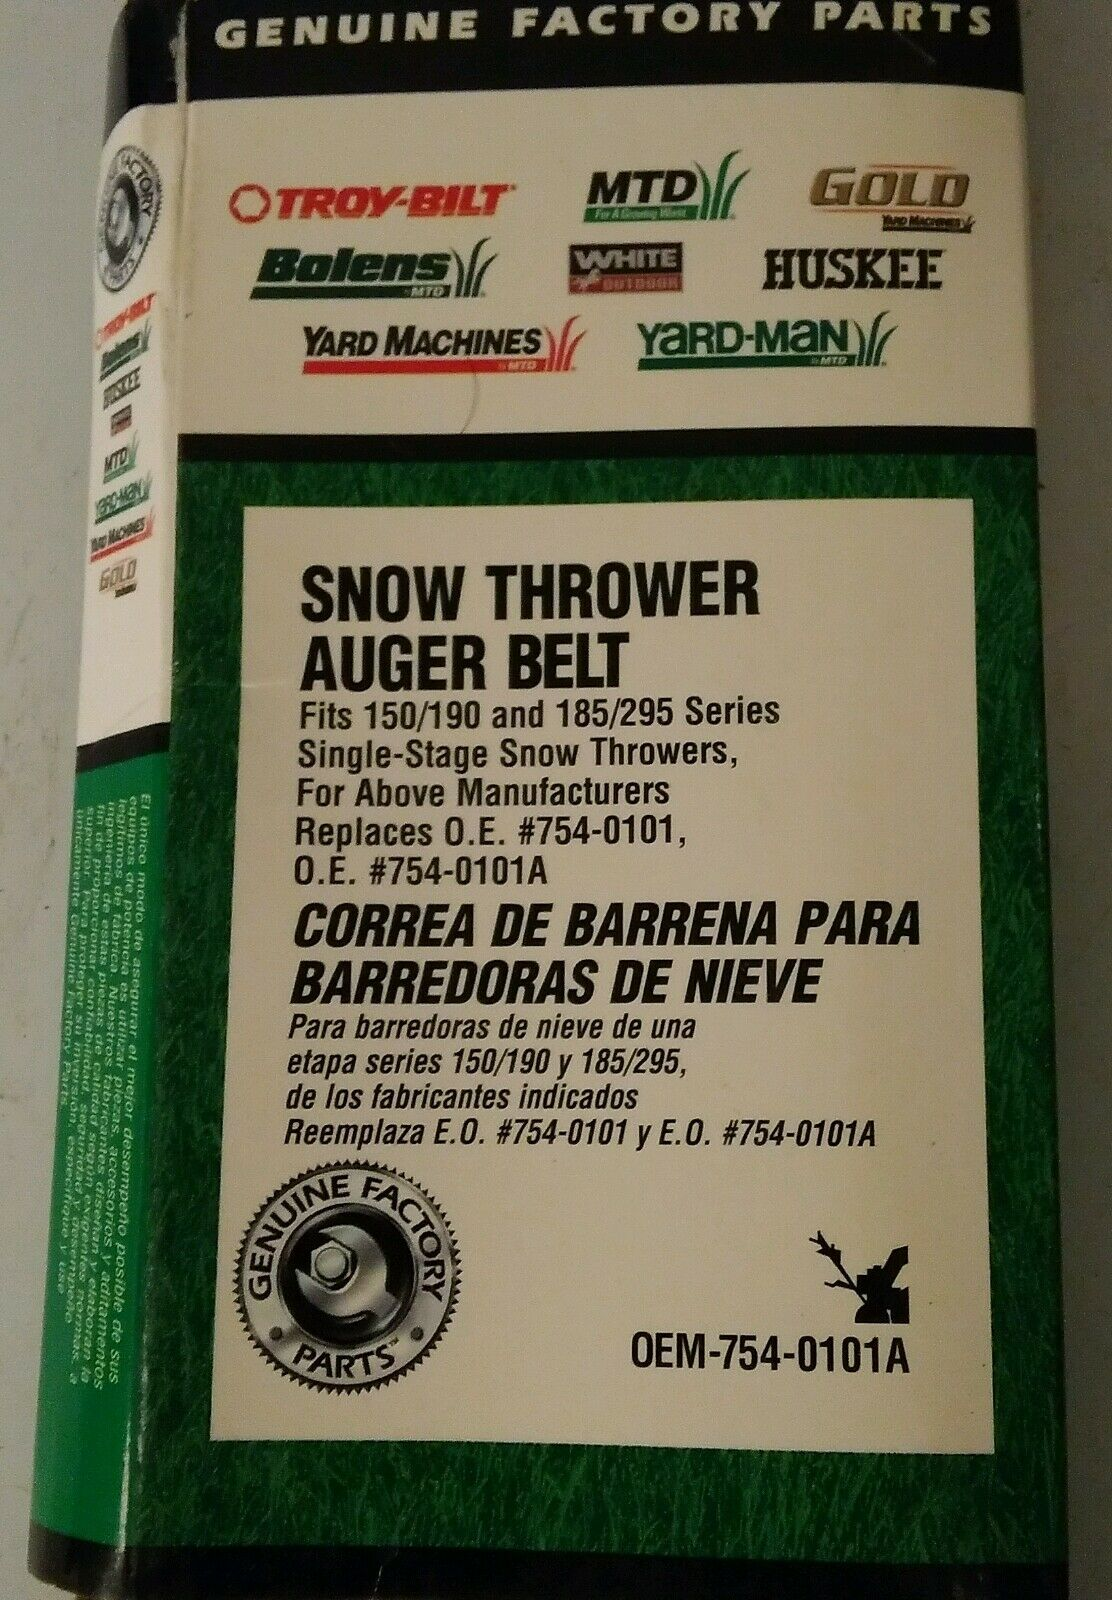 Single Stage Auger Belt Oem 754 0101a Mtd Yard Machines Bolens Snow Er 1 Of 3only 2 Available See More